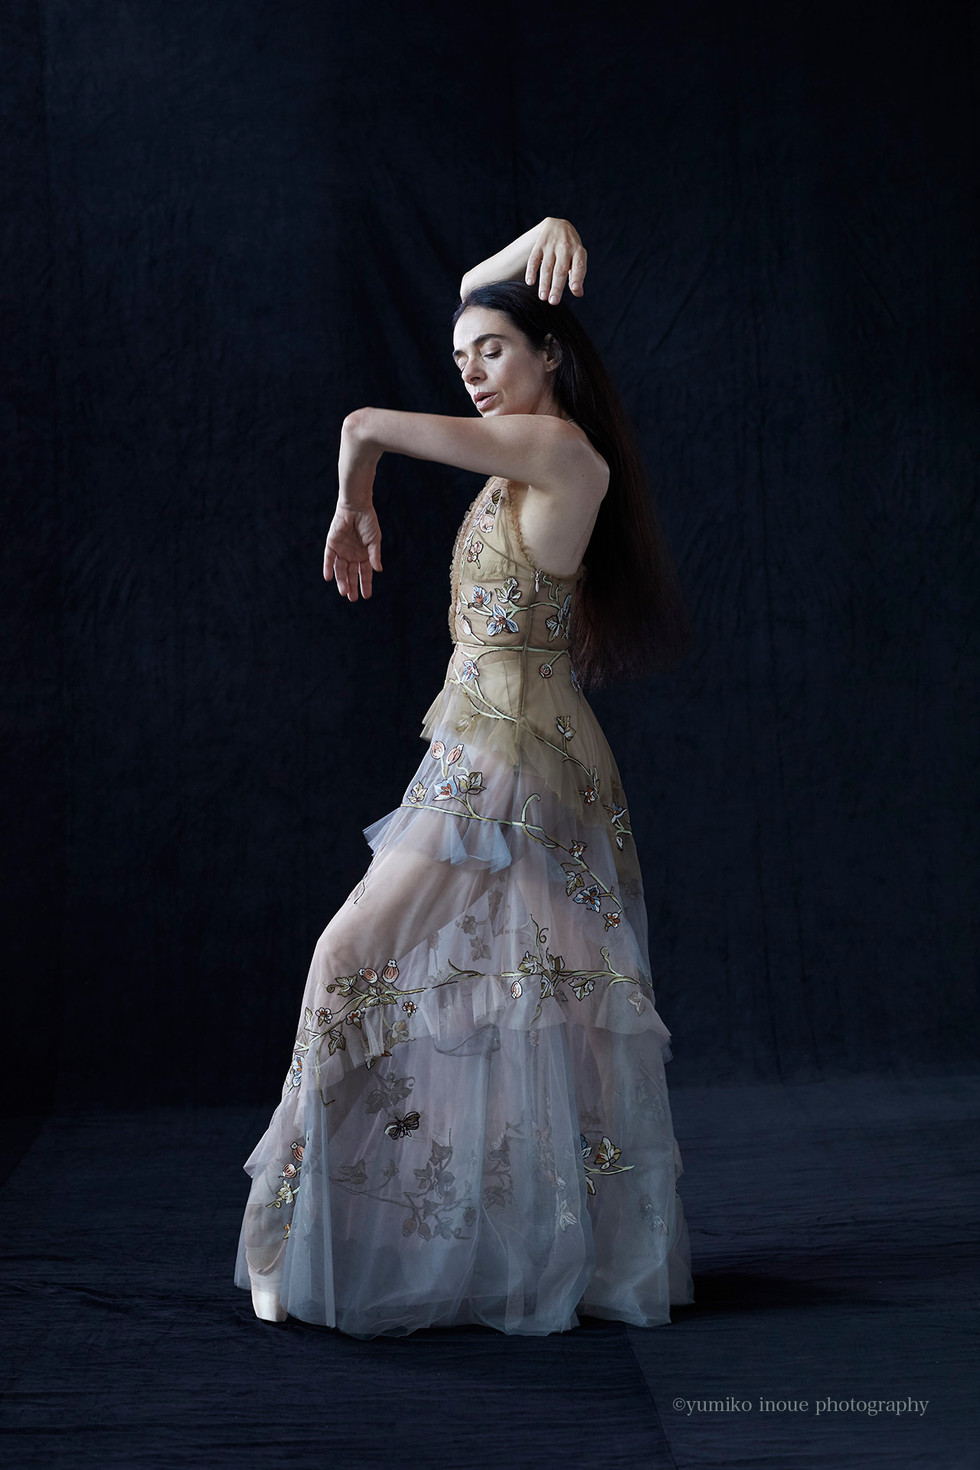 Alessandra Ferri | Legendary ballet dancer for VOGUE japan